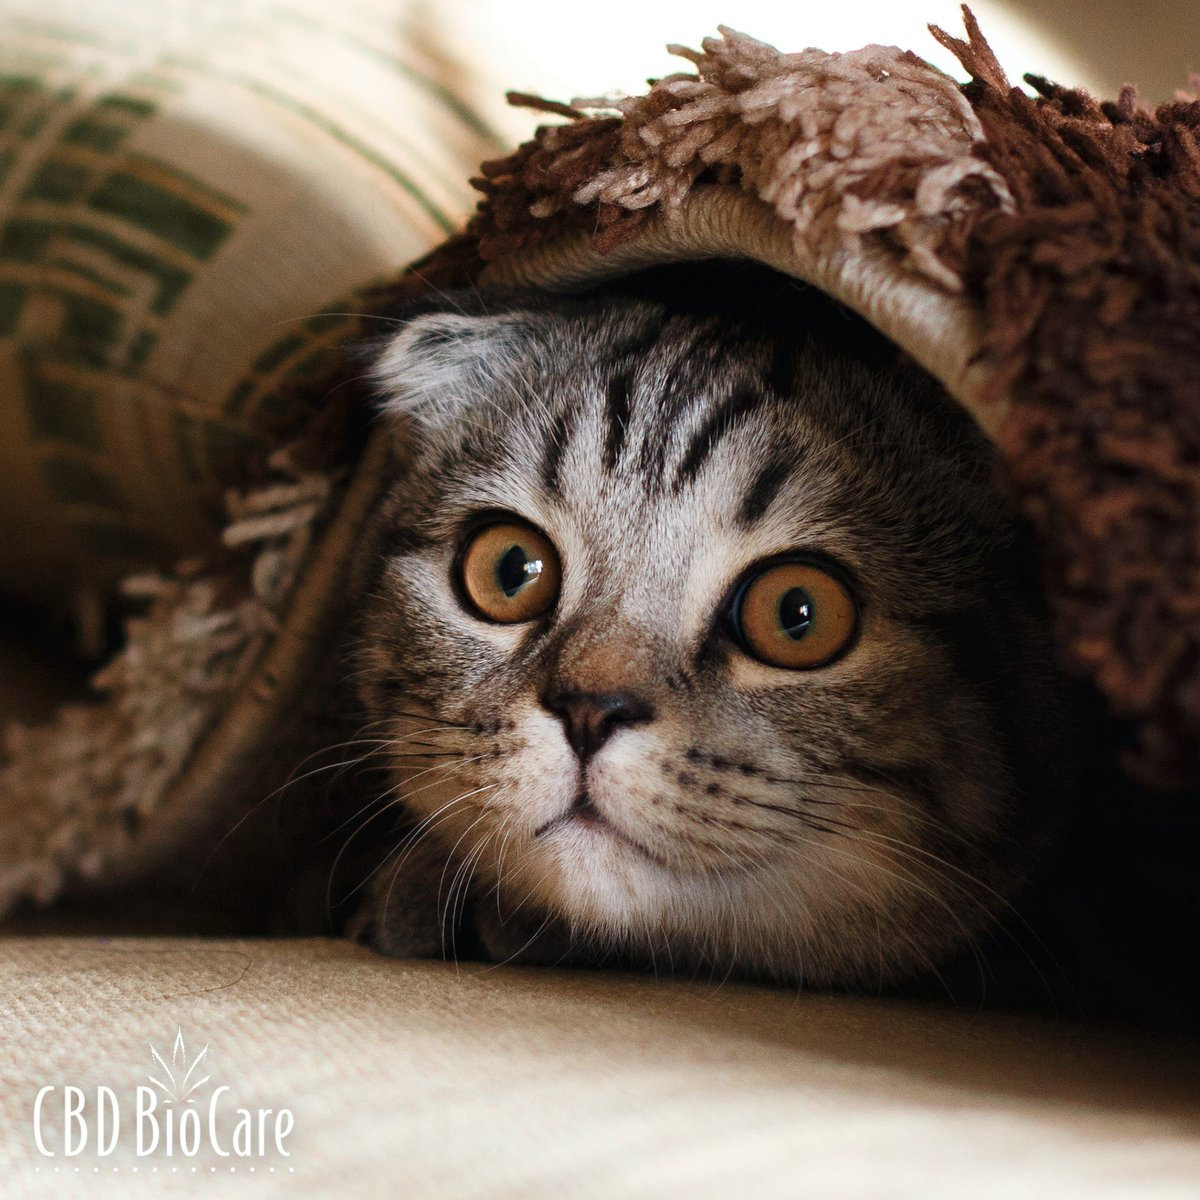 Pets & Fireworks Do your pets hide on July 4th? CBD can help calm fear & anxiety. Give them CBD 30 minutes before the fireworks. Use my coupon code novo to save 5%.  https:// tinyurl.com/yazt8t7r     #cbdbiopetcare #cbdpetproducts #cbdbenefits #cbdforanxiety #cbdforsleep #cbdforpets #petcbd<br>http://pic.twitter.com/lSPeAqHyqA